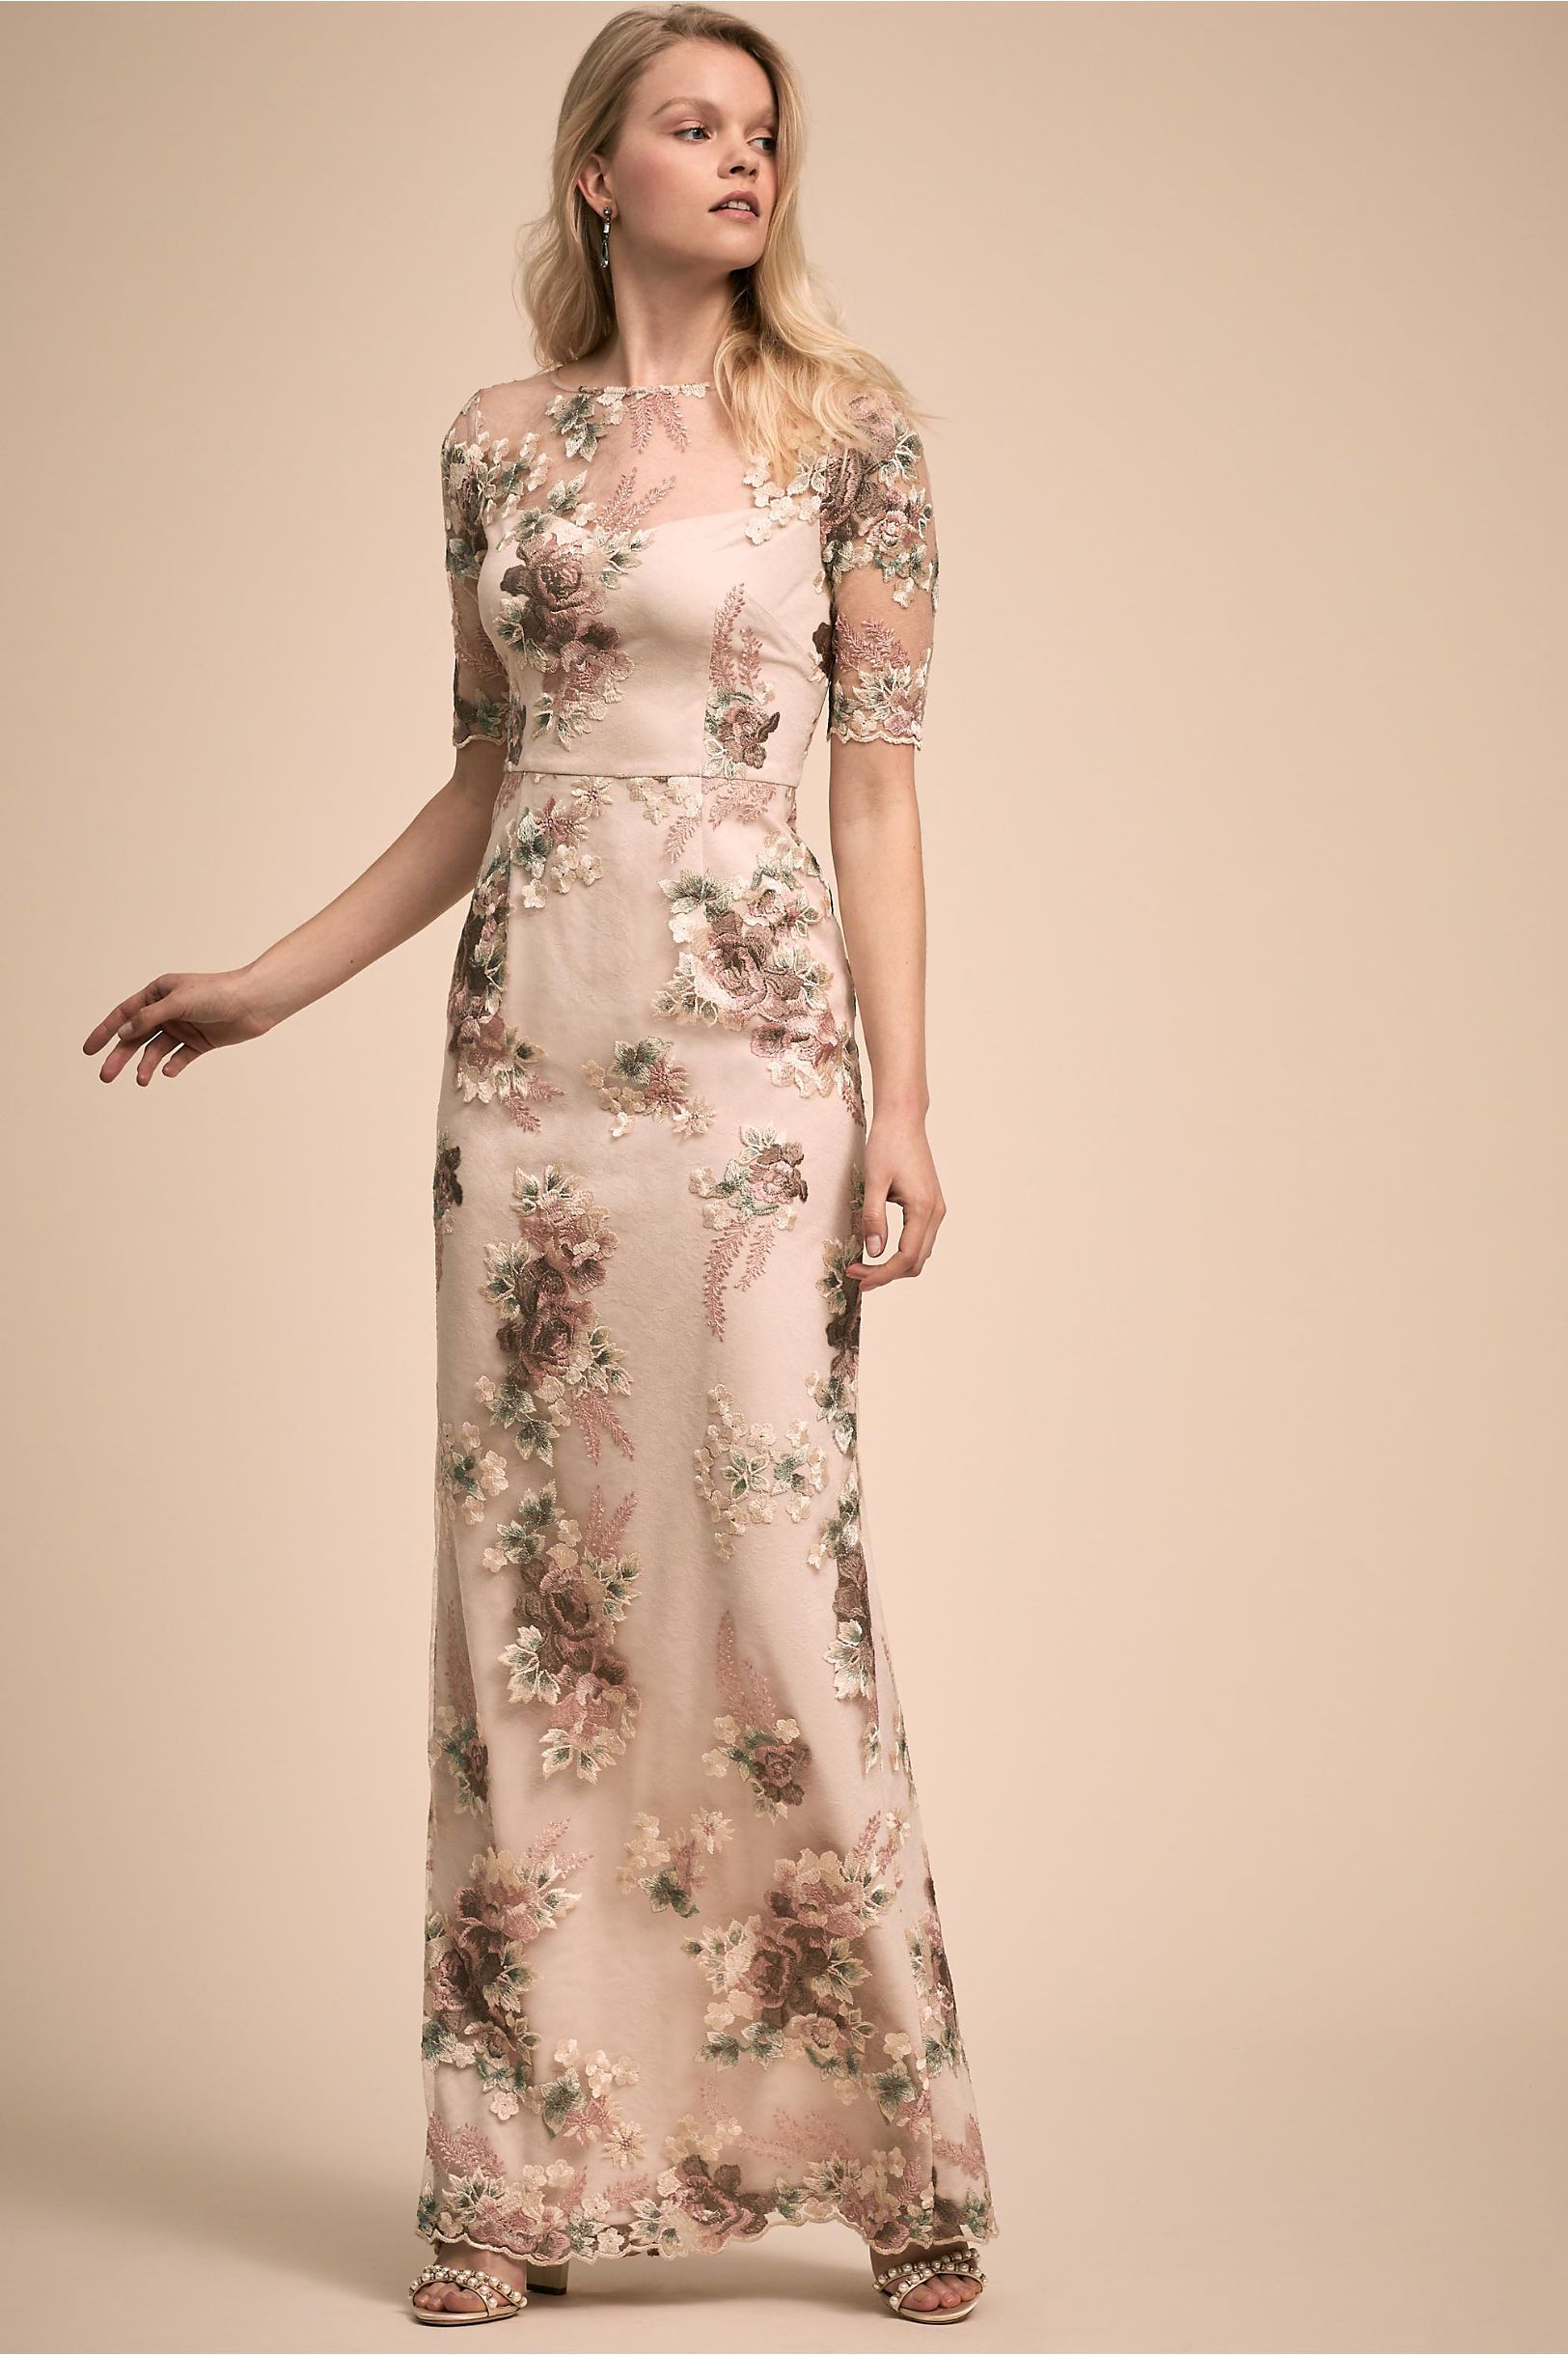 7483f8e1716 BHLDN s Adrianna Papell Roman Dress in Mink Multi in 2019